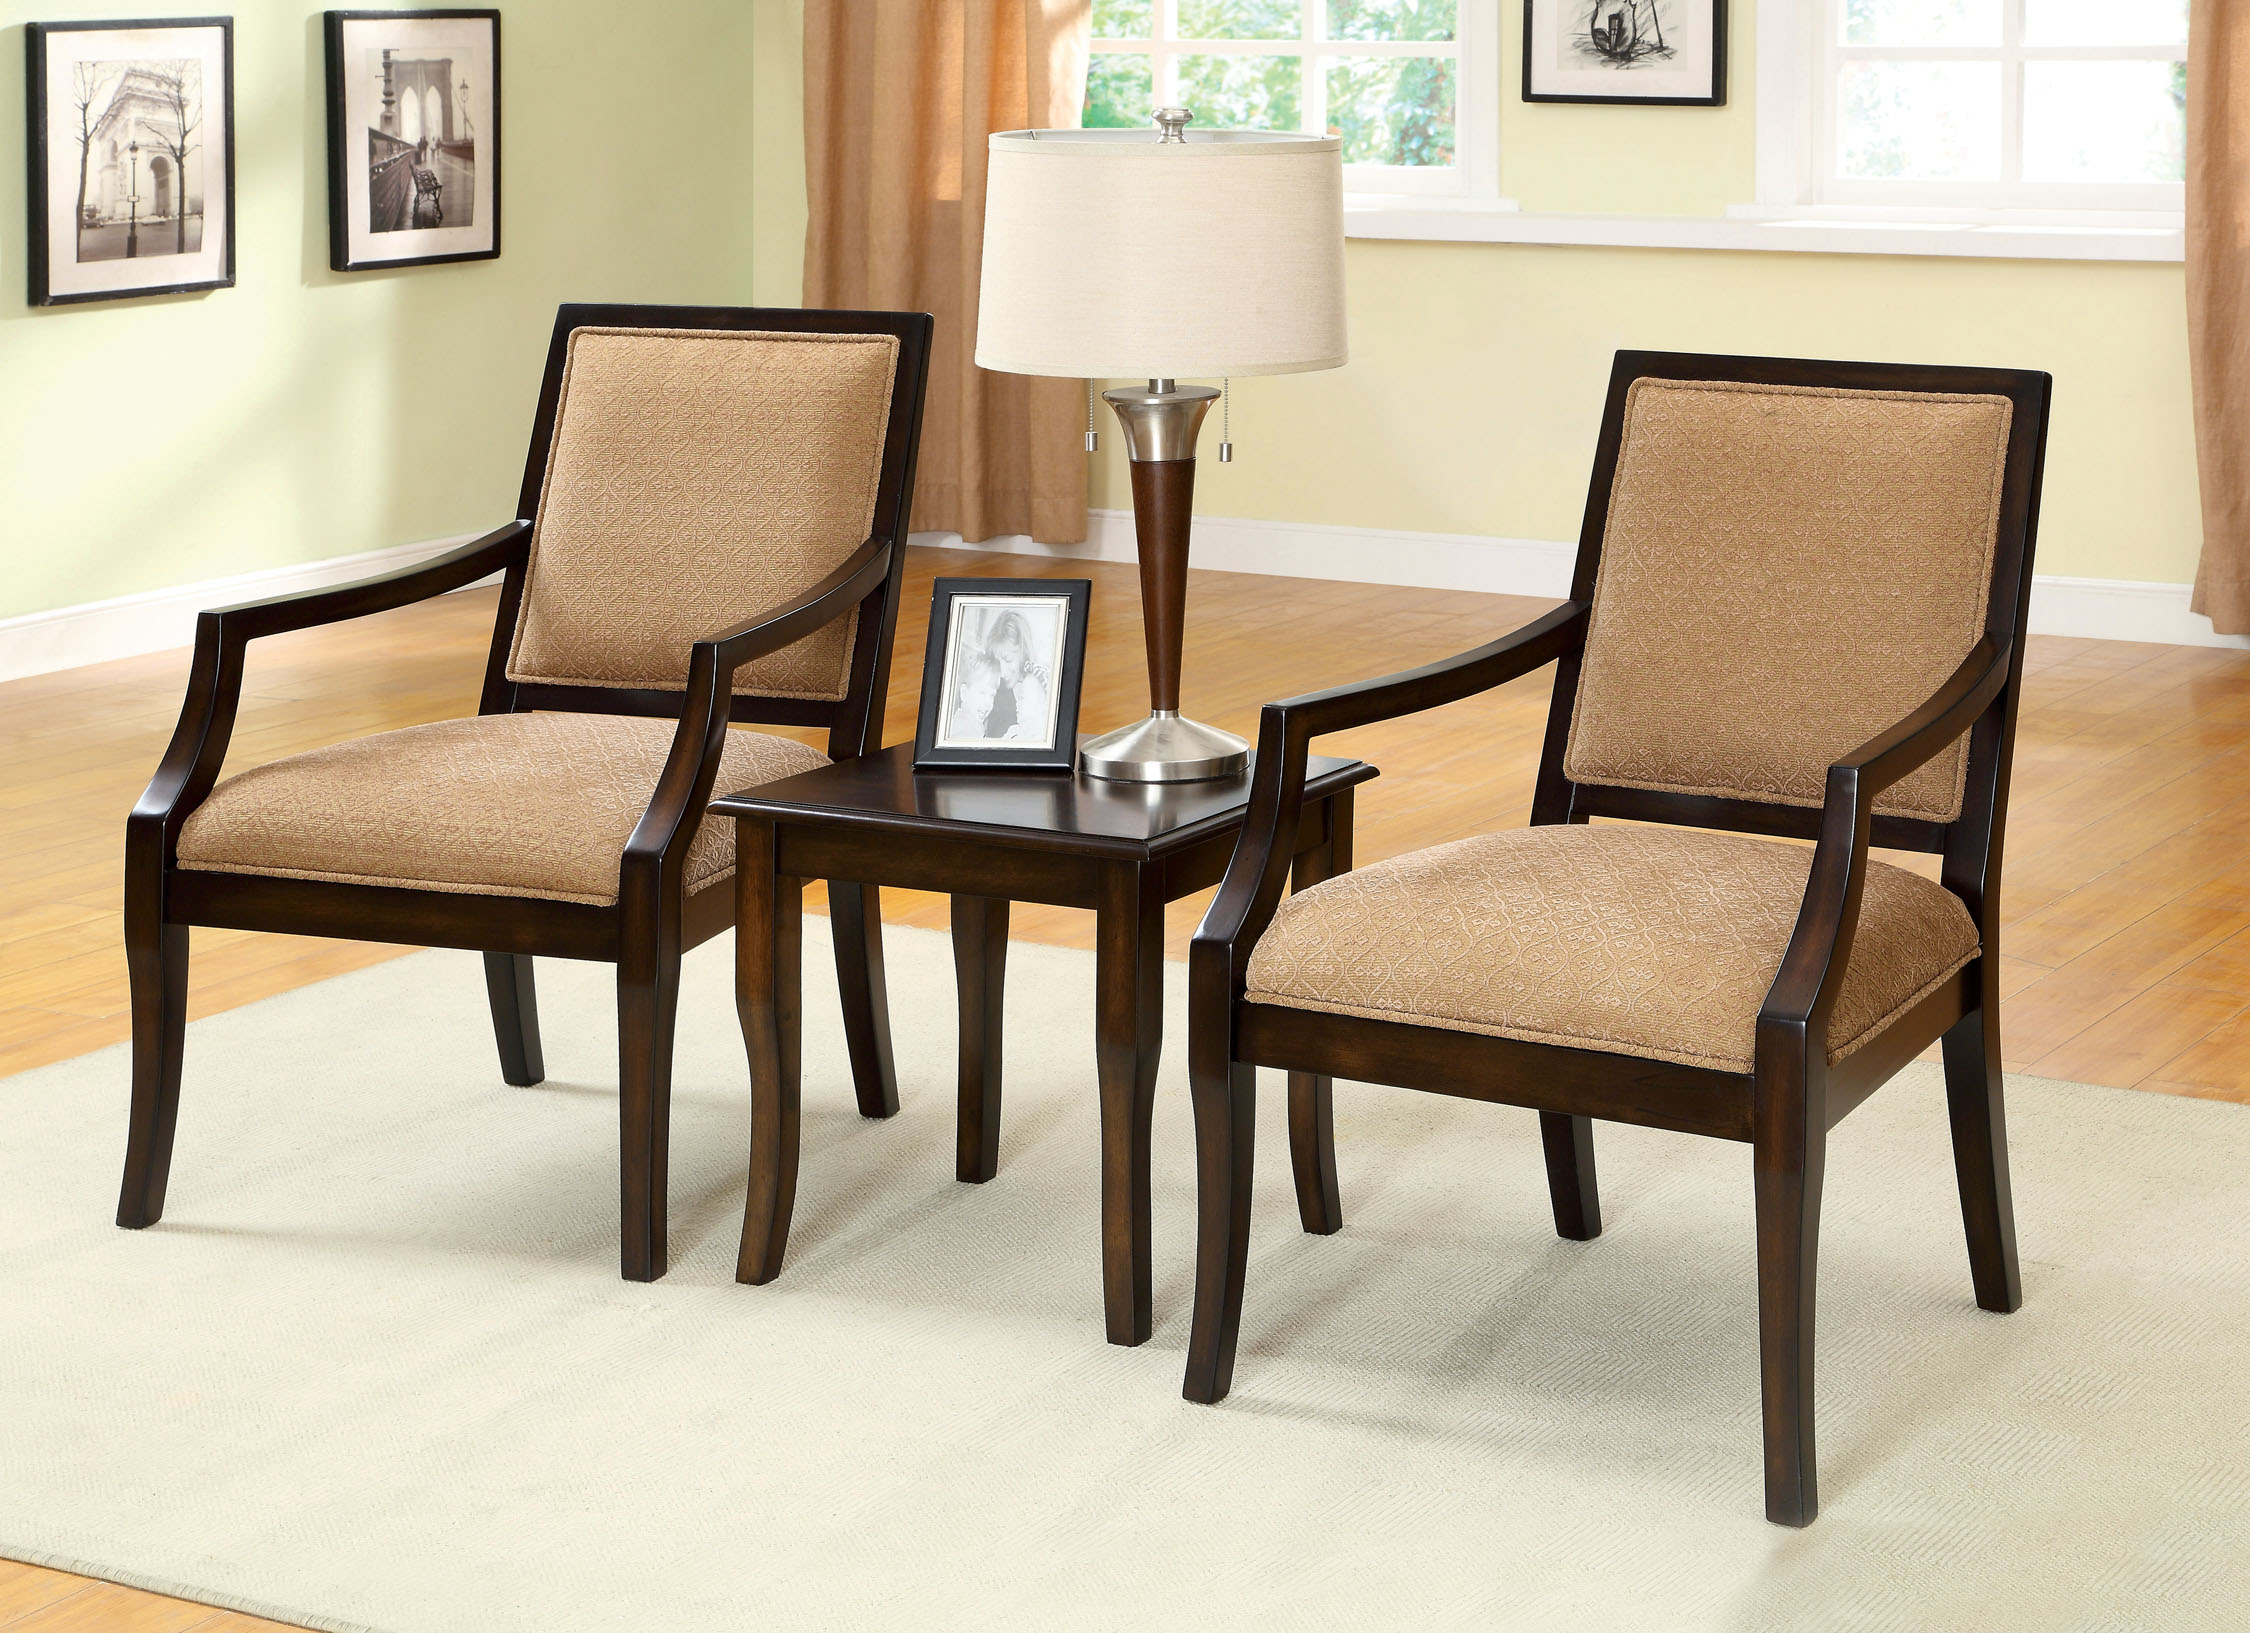 furniture america espresso latio piece accent chair and table set prod chairs with wooden lamps for living room gray chest oval dining cover uma console clearance kitchen pottery